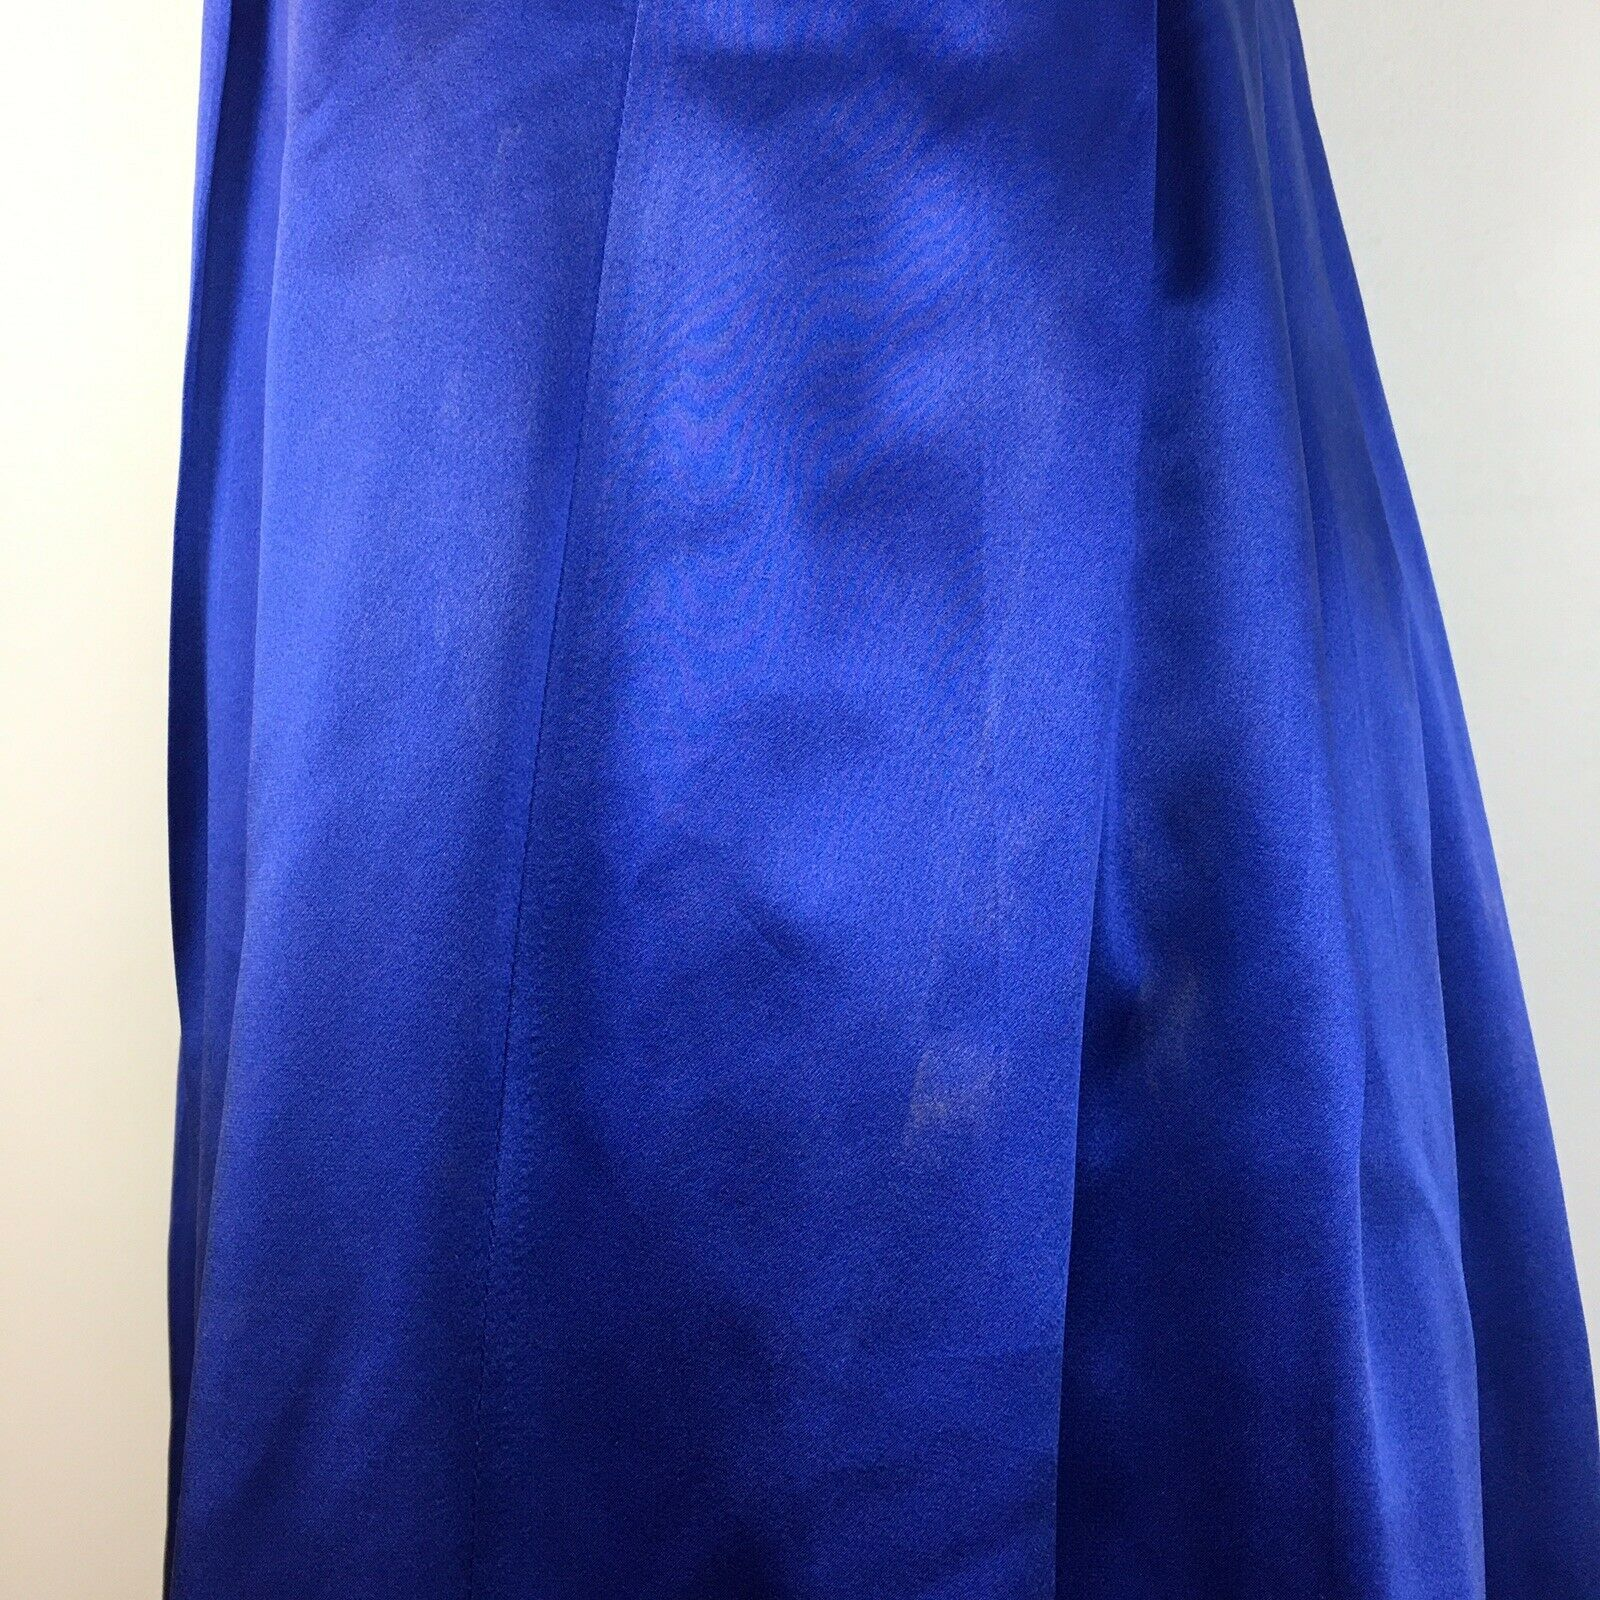 BCBG Maxazria Women's Blue Satin Beaded Dress with Black Lace Front Size 2